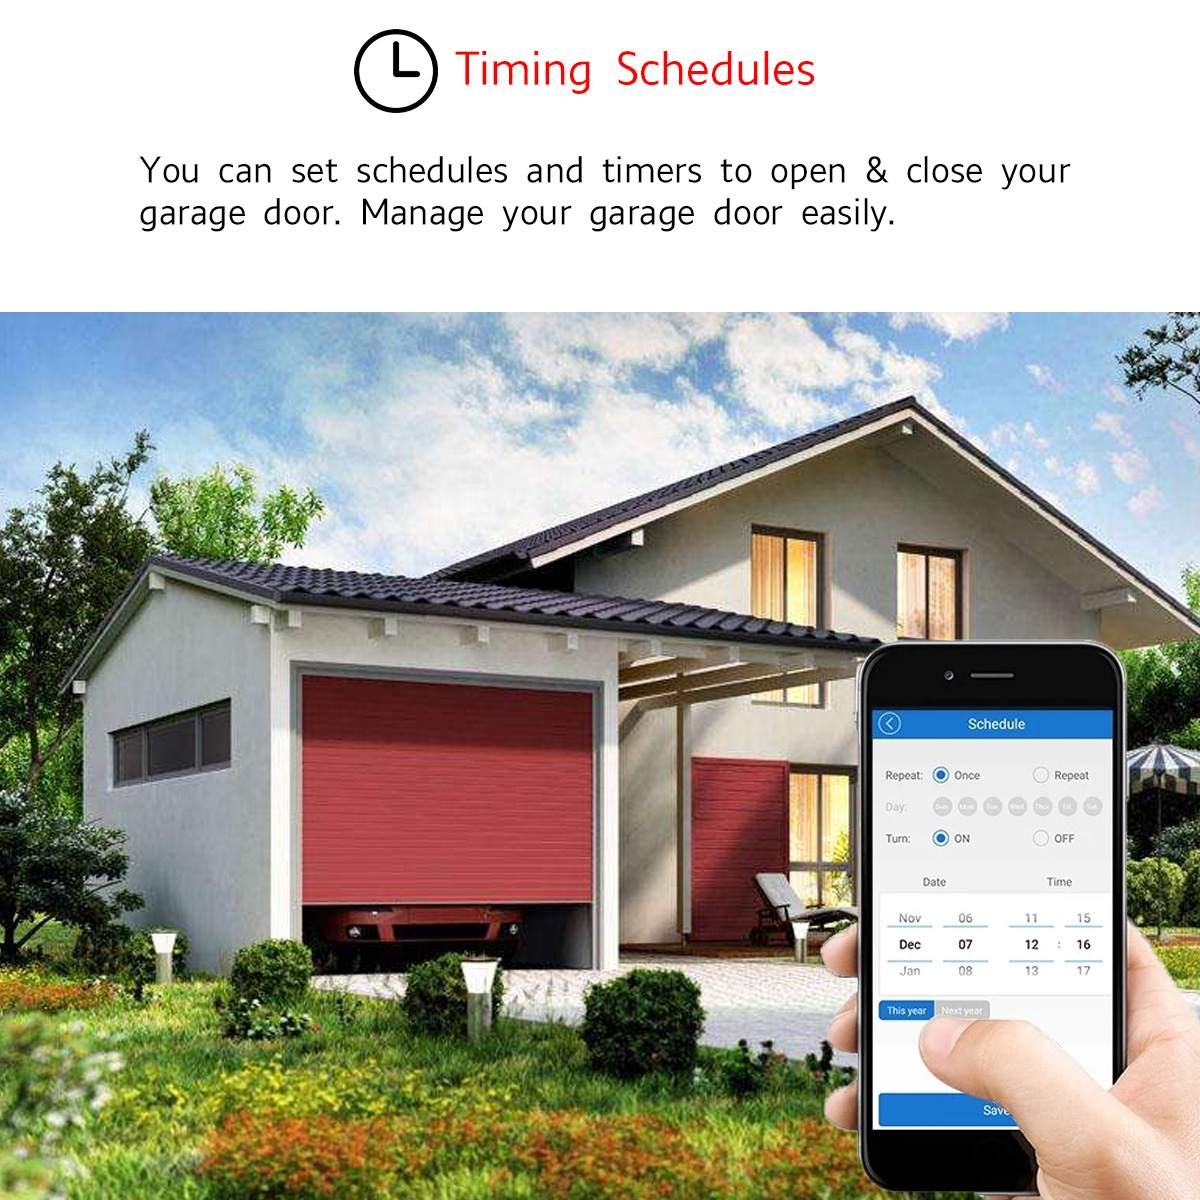 H72a4c069a68d4e13ae0bbba459864f215 1Set WiFi Switch Smart Home Garage Door Opener Controller For eWeLink APP Phone Voice Control for Amazon Alexa for Google Home